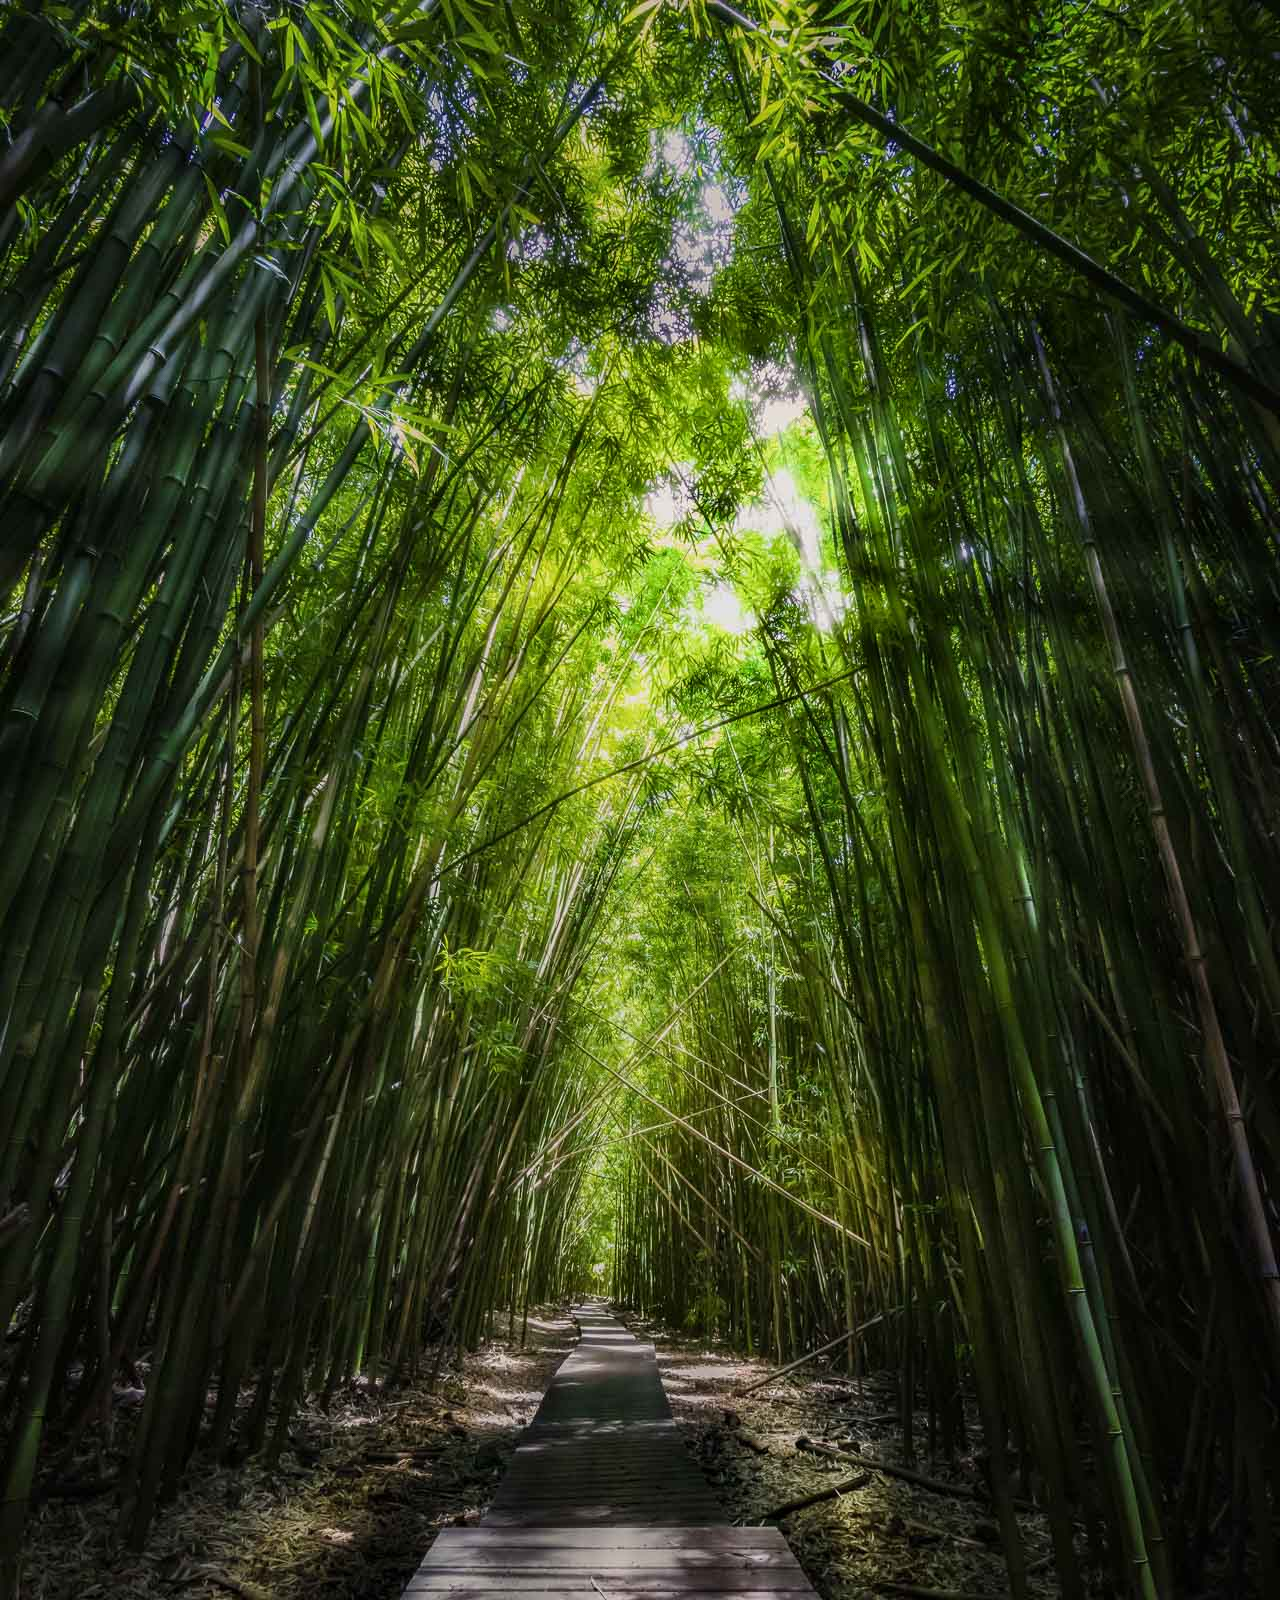 Bamboo Forest in Maui